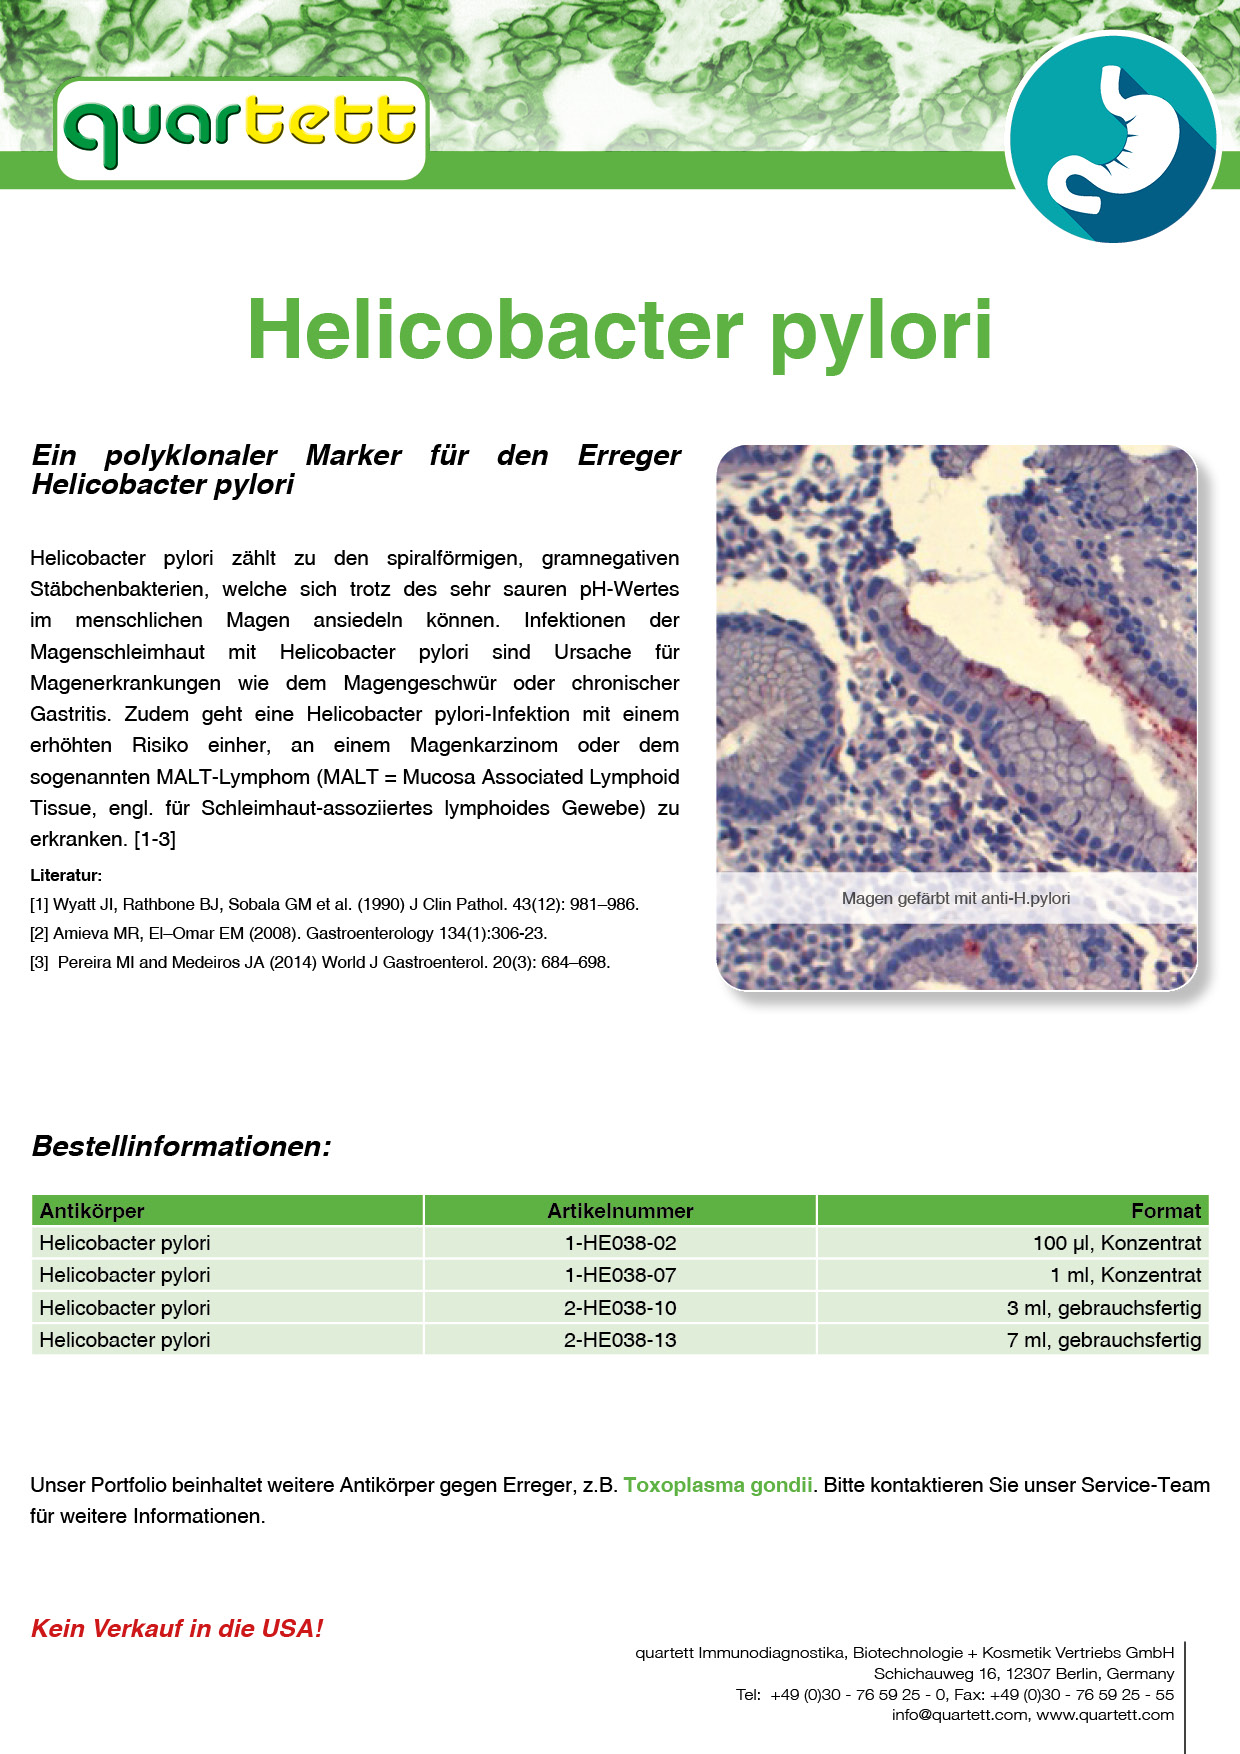 Helicobacter pylori -HE038- (Deutsch & English)